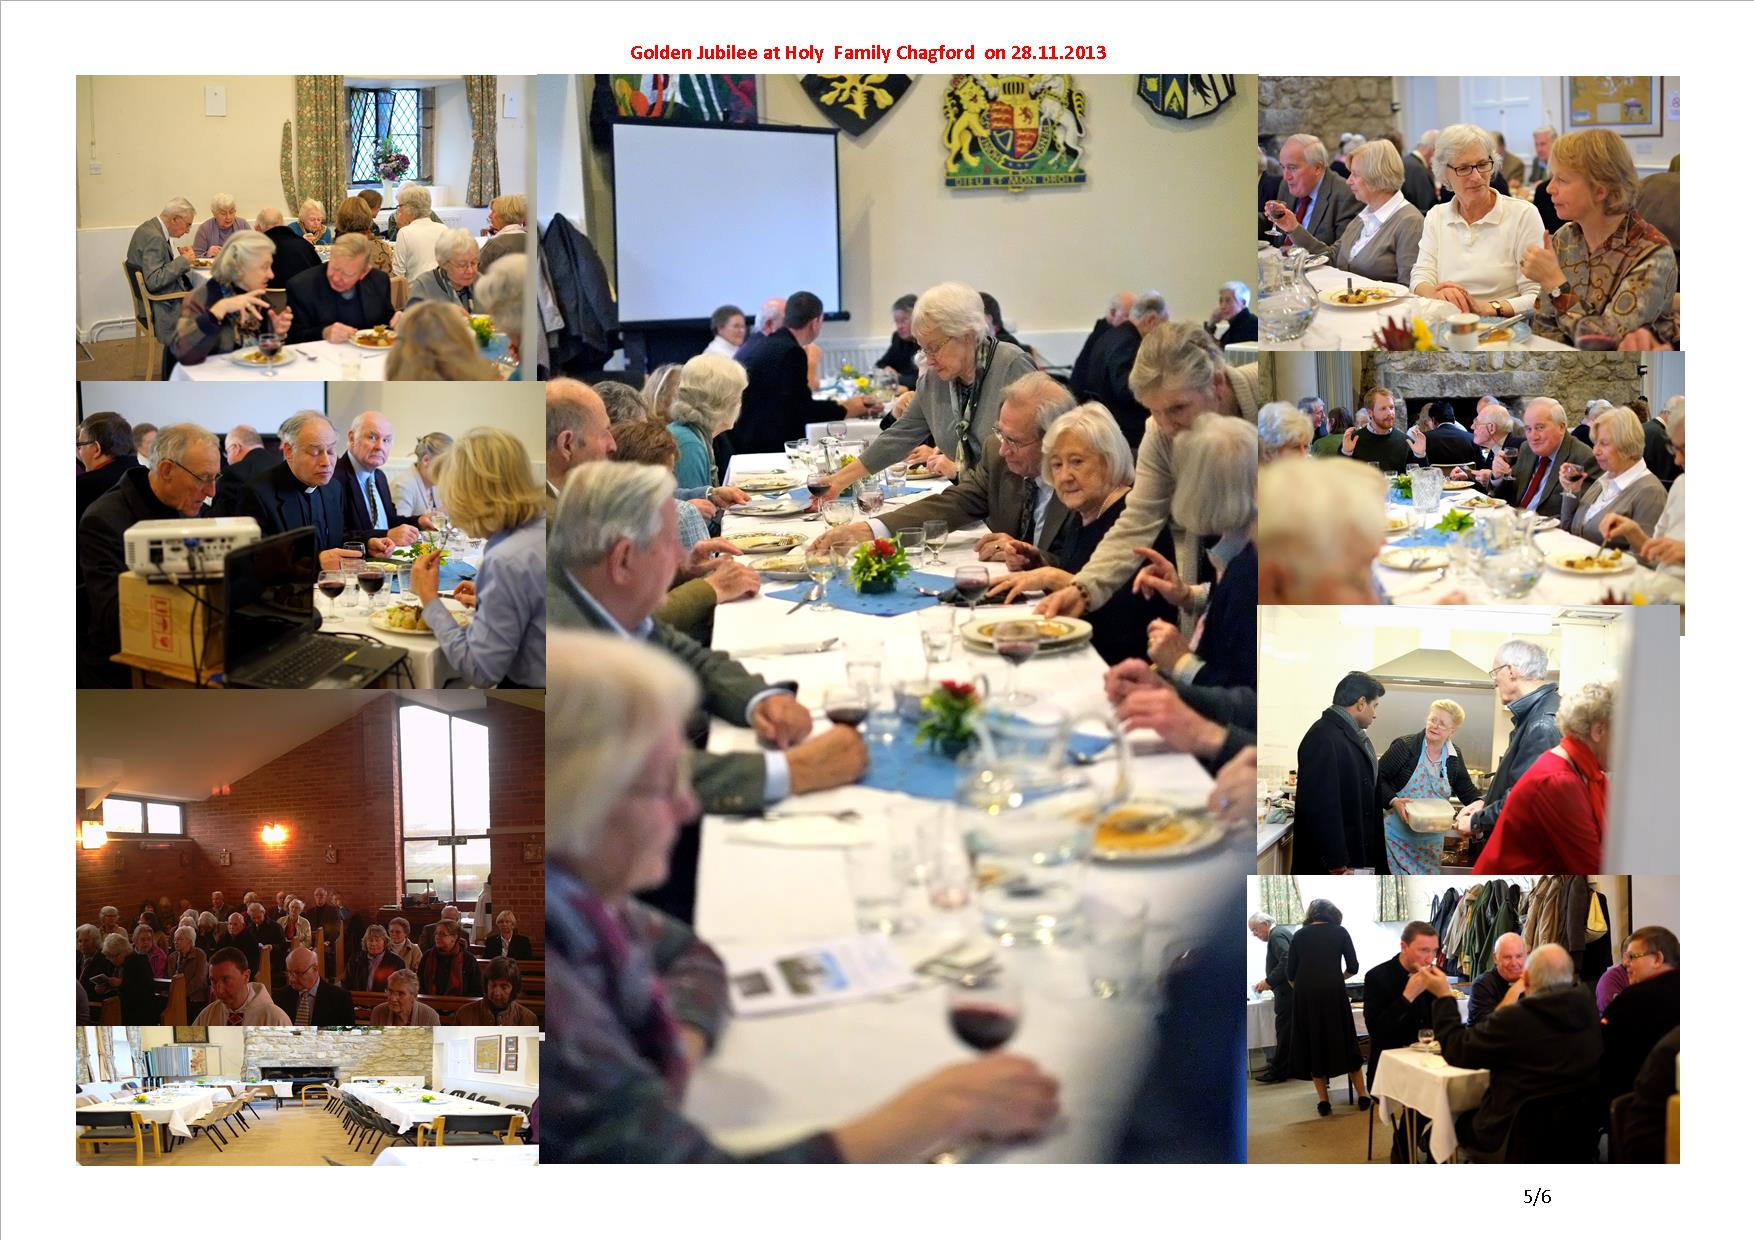 jubilee-celebration-at-holy-famil-chagford-28-11-2013-05